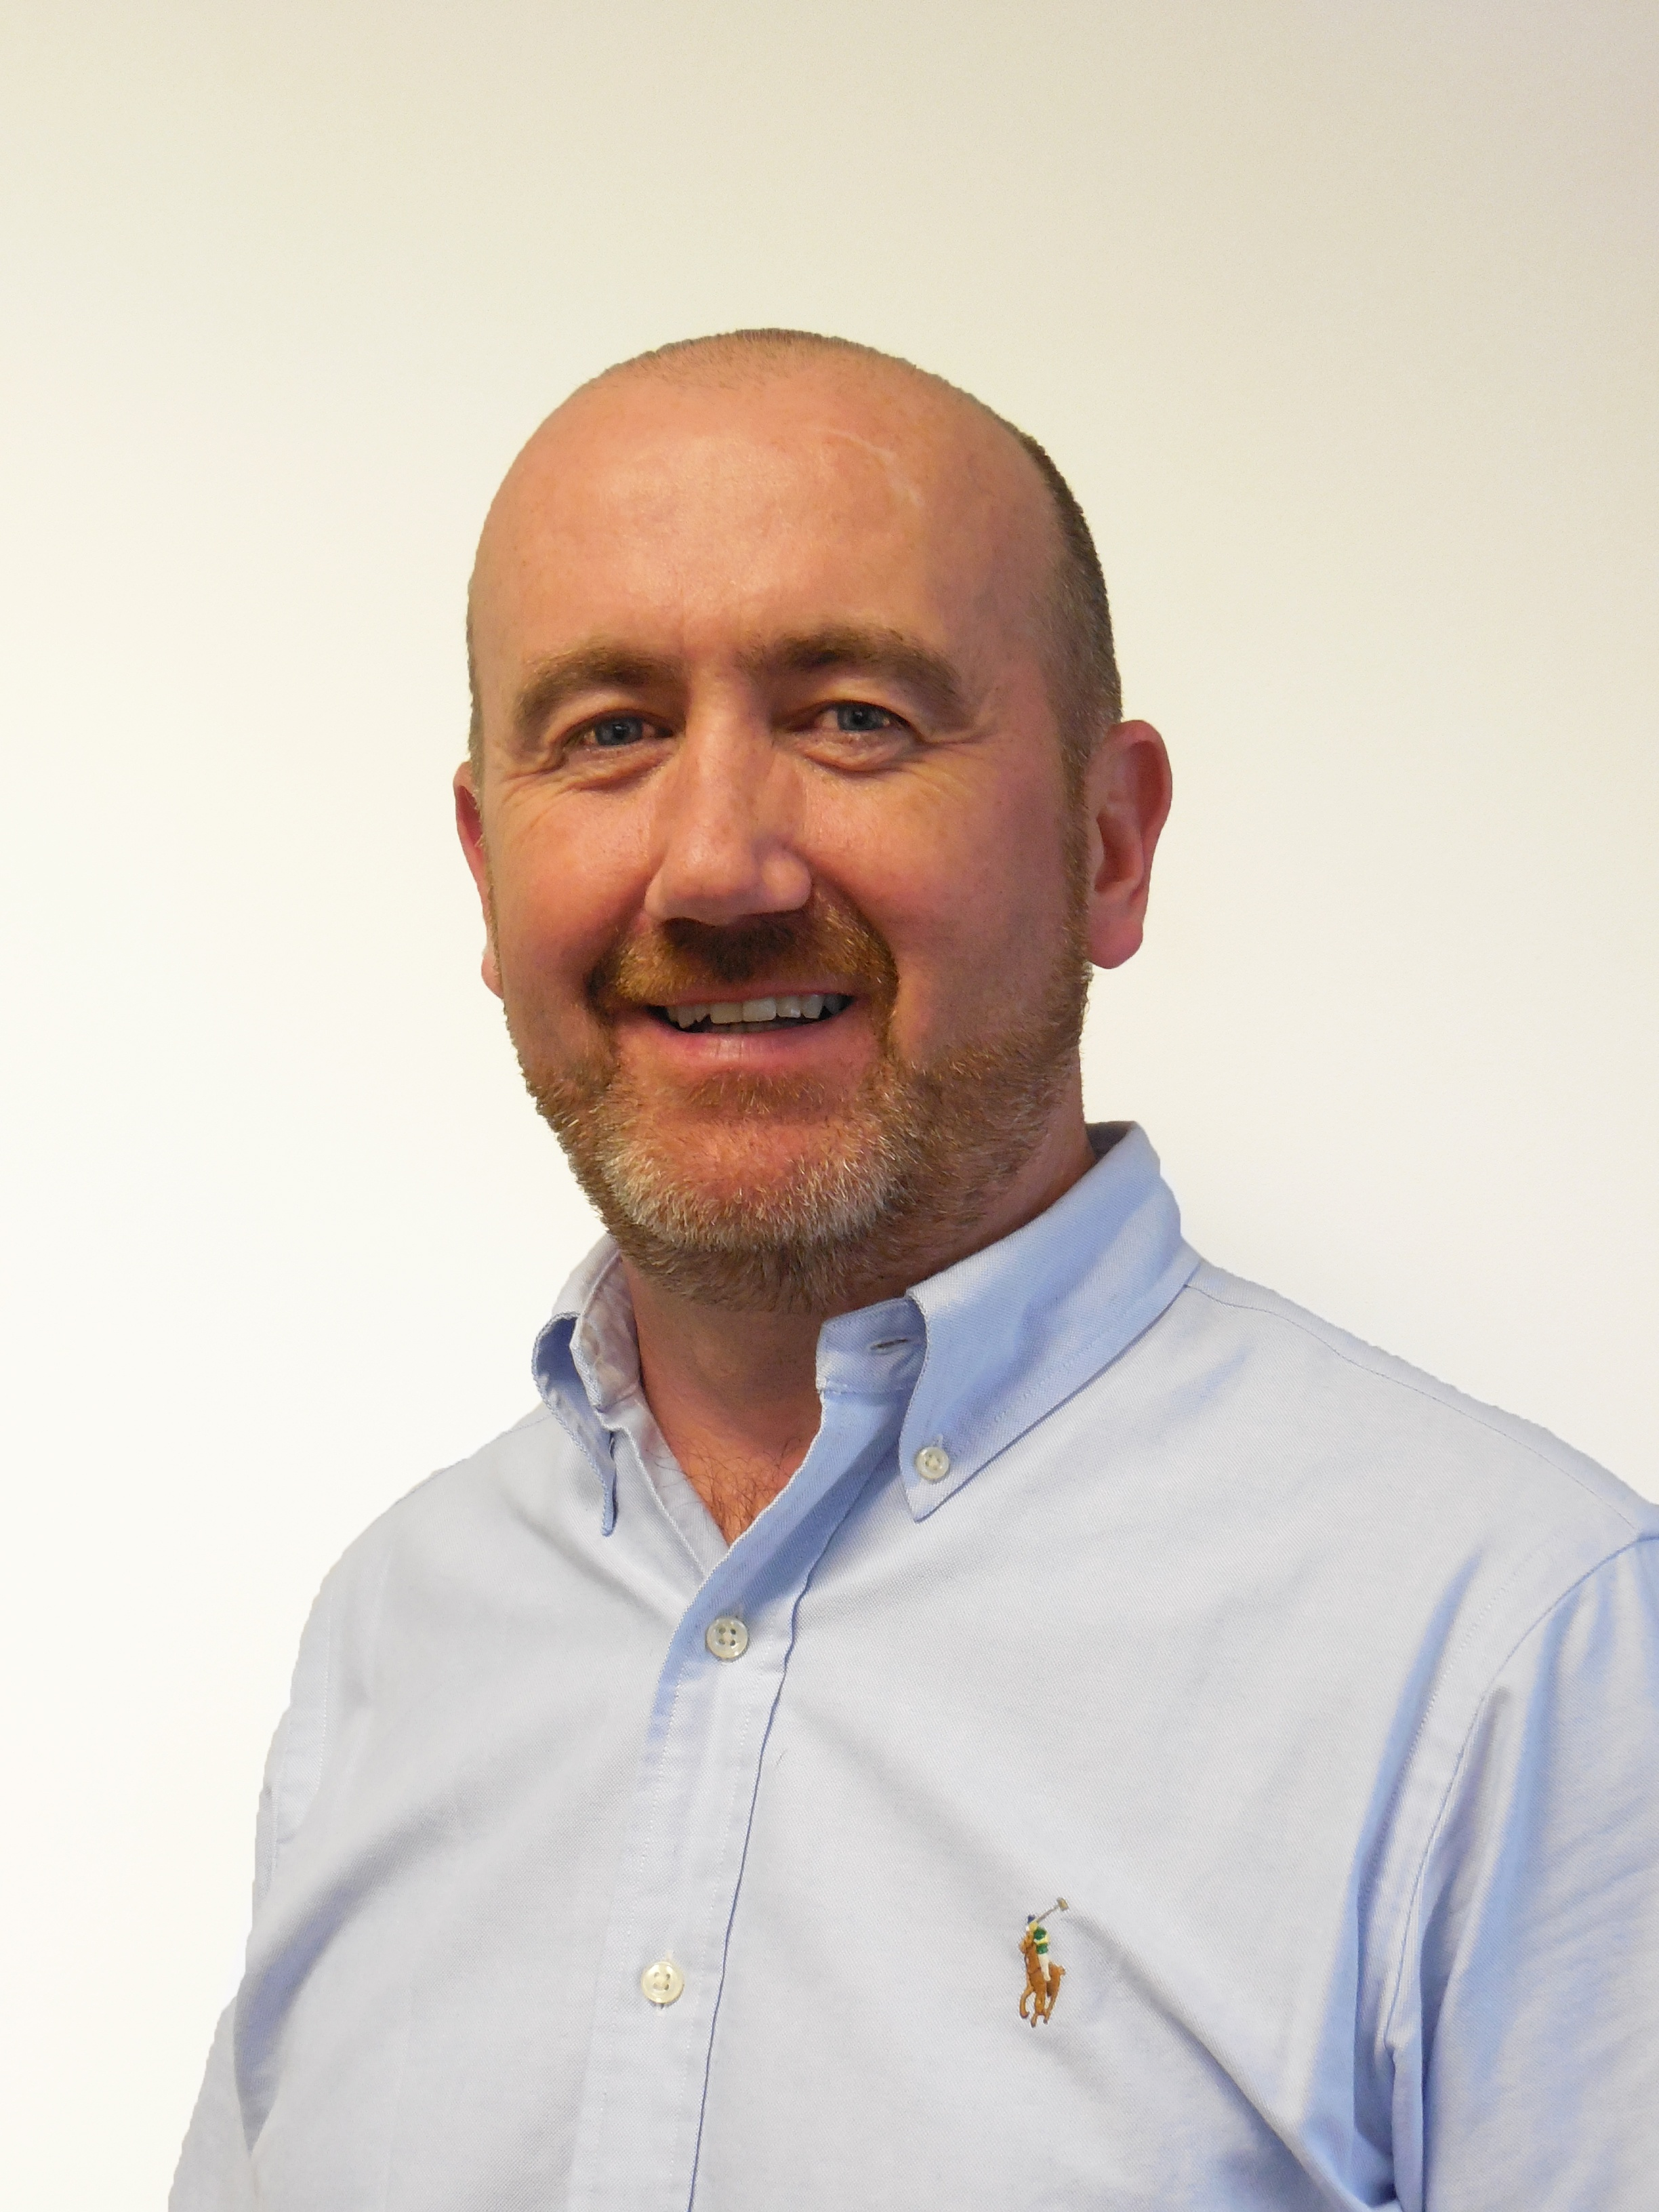 """I just love parcels""… Introducing Phil Hanna, our newest recruit!"